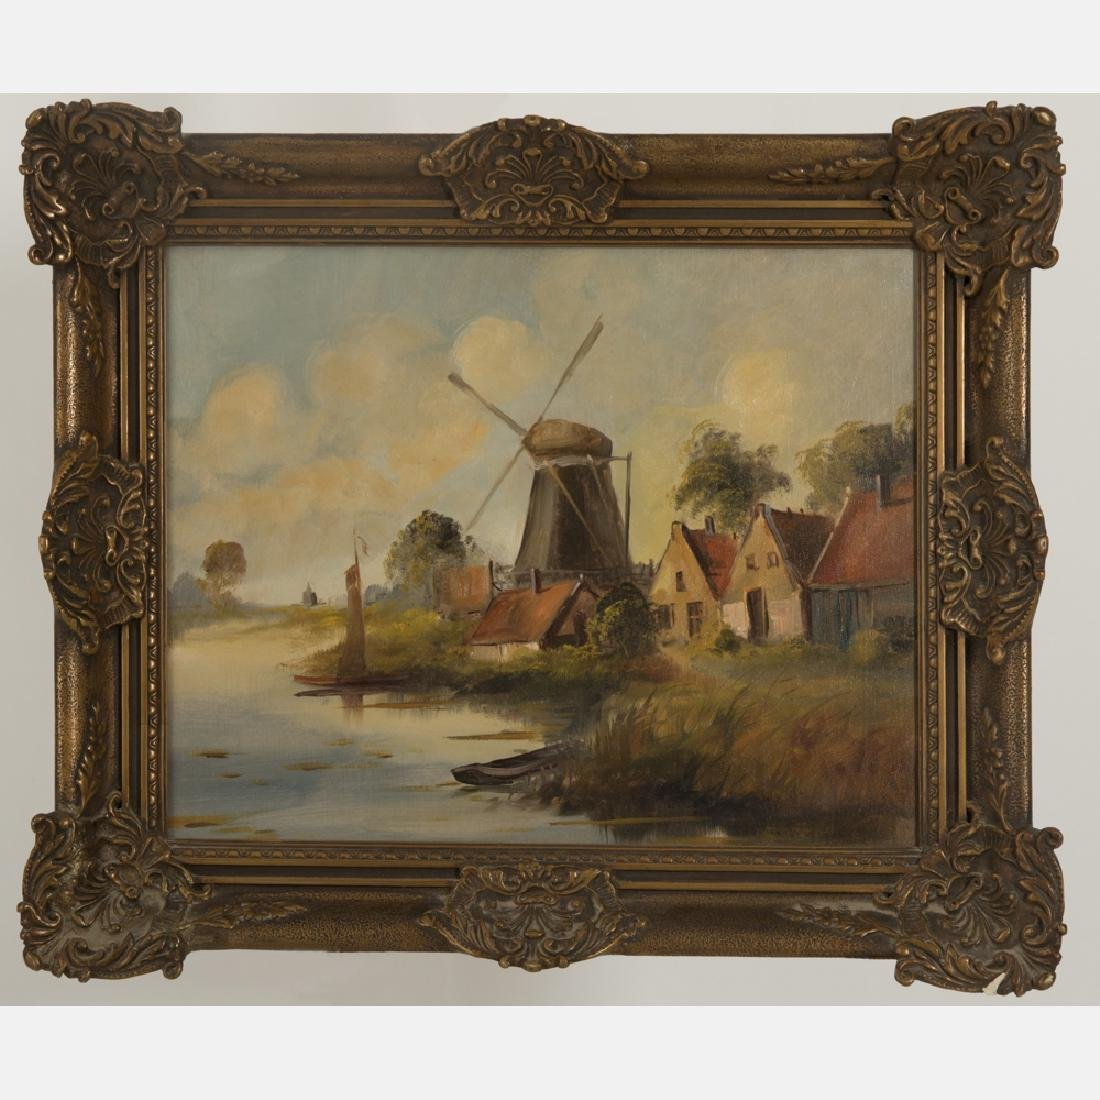 Artist Unknown (19th/20th Century) River Scene with